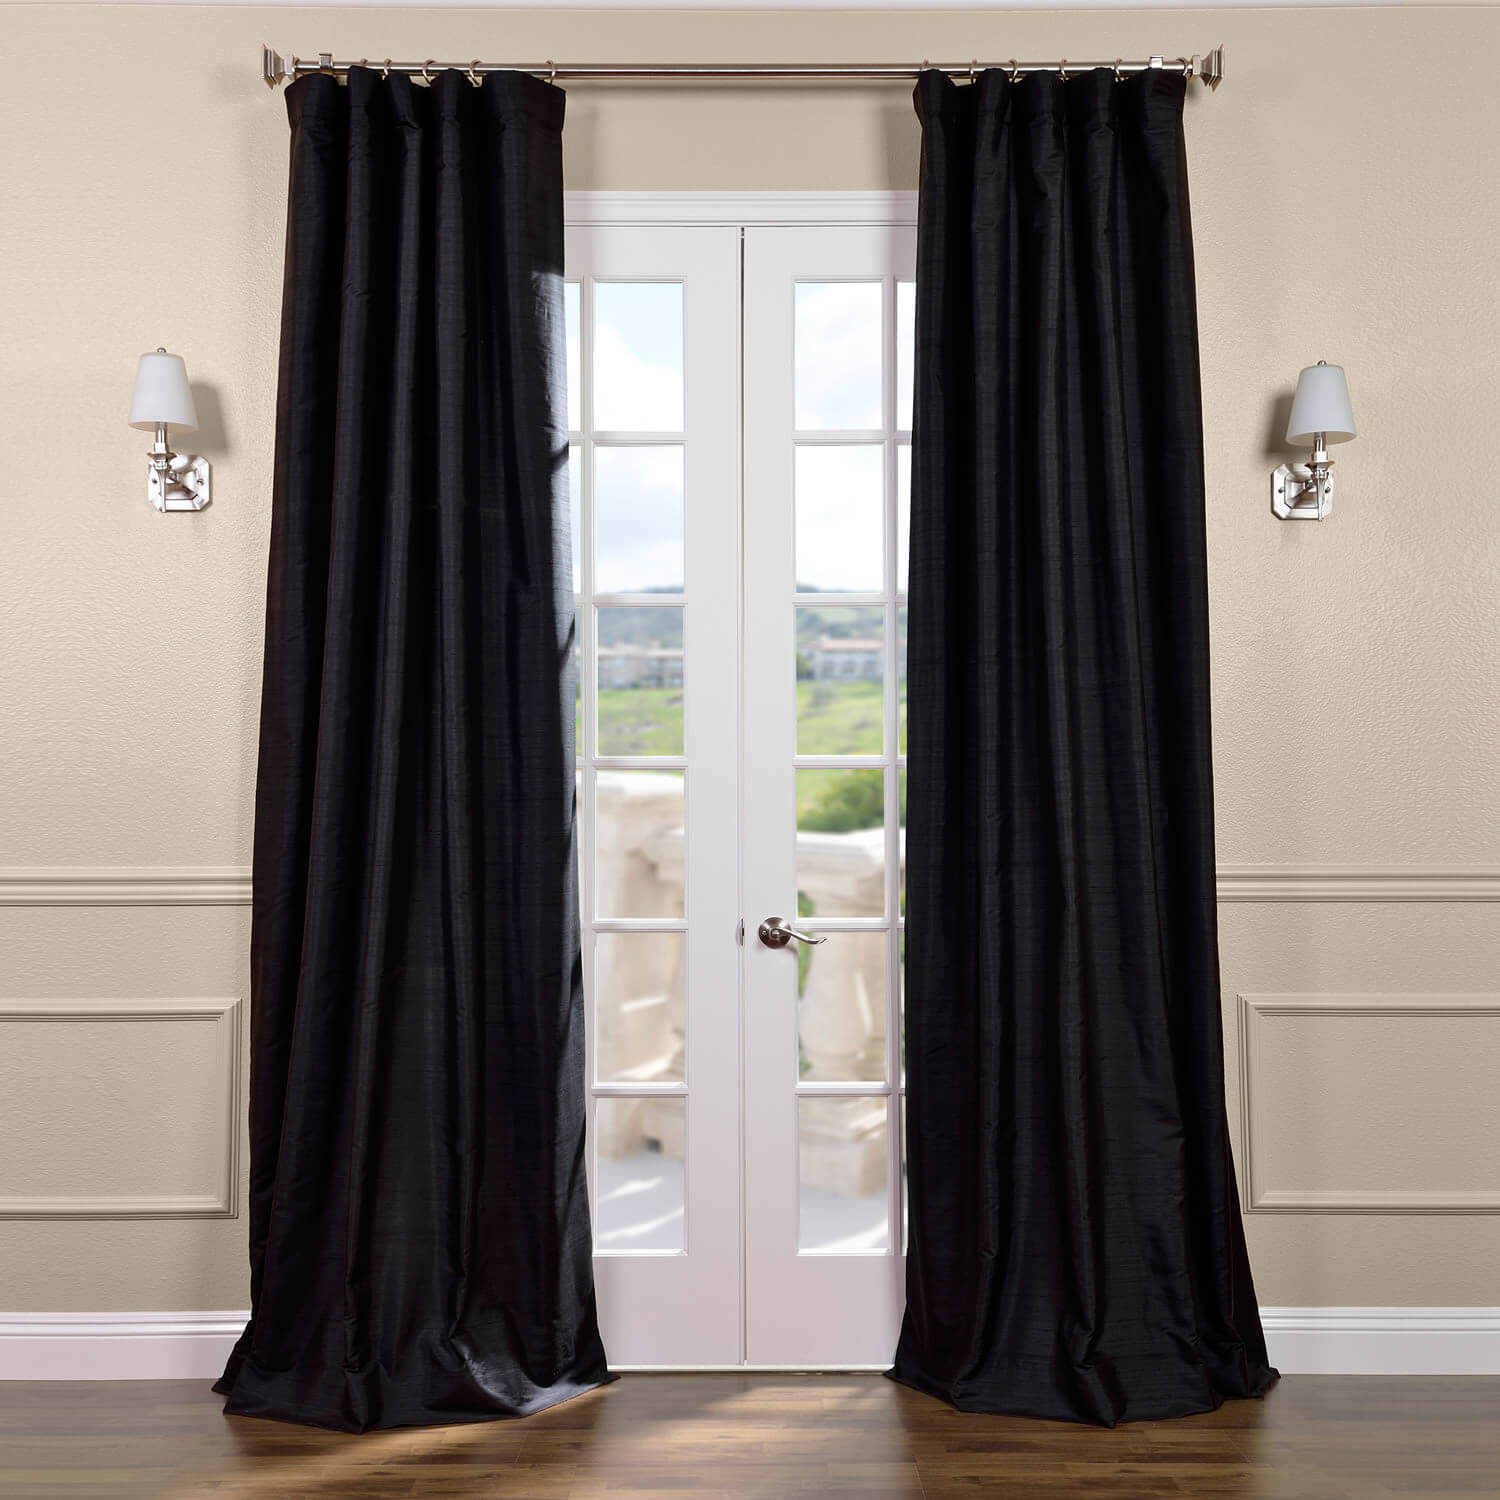 Black Silk Curtains Half Price Drapes